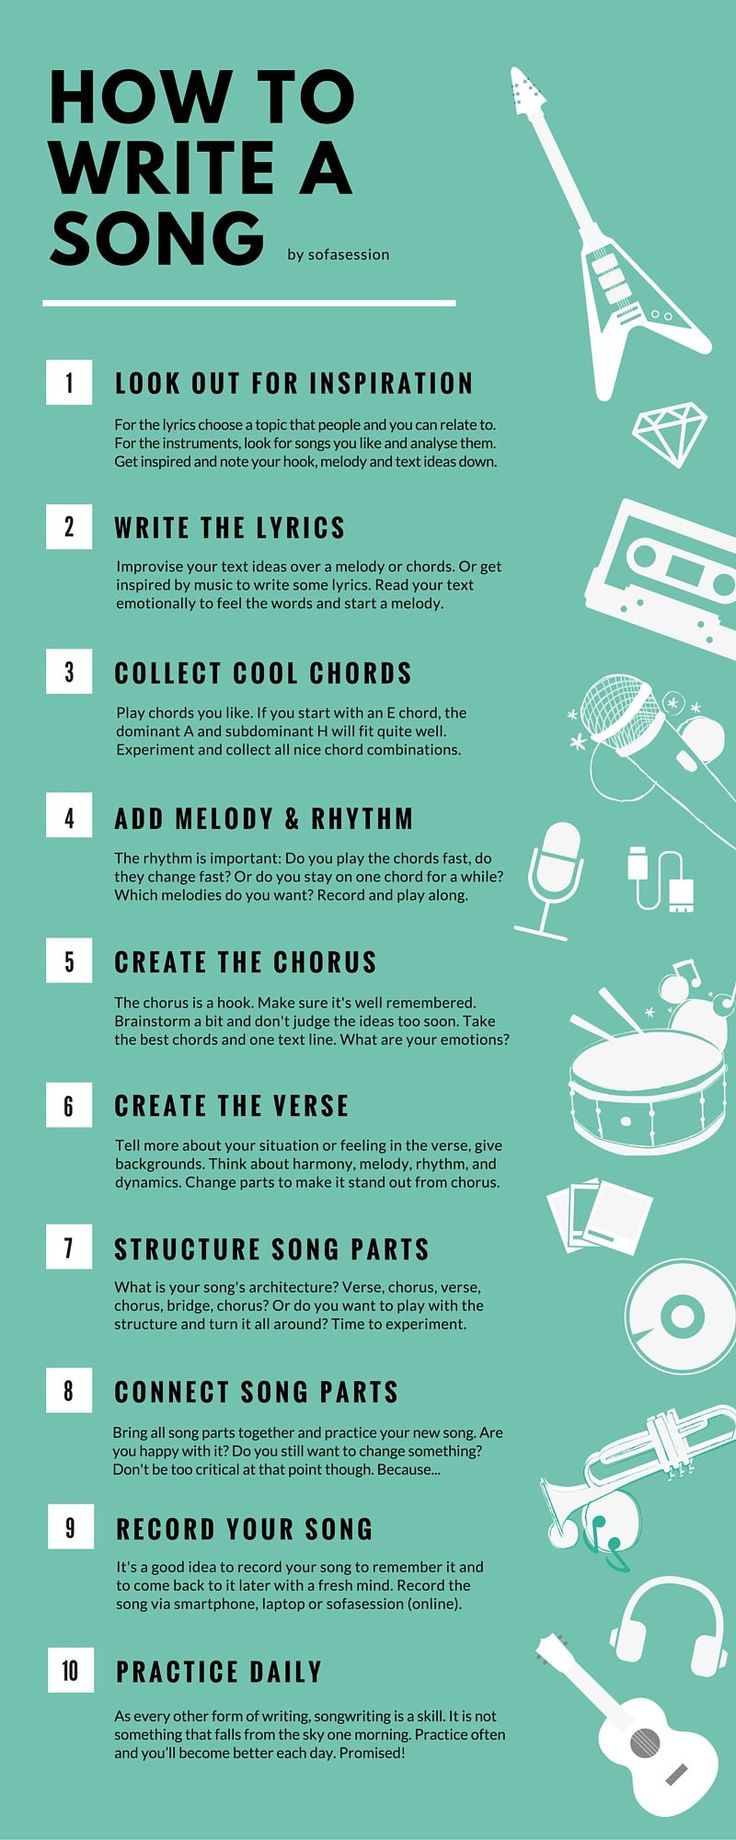 Best 25 writing songs ideas on pinterest how to write songs how to write a song in 10 steps as a beginner the infographic shows you hexwebz Choice Image